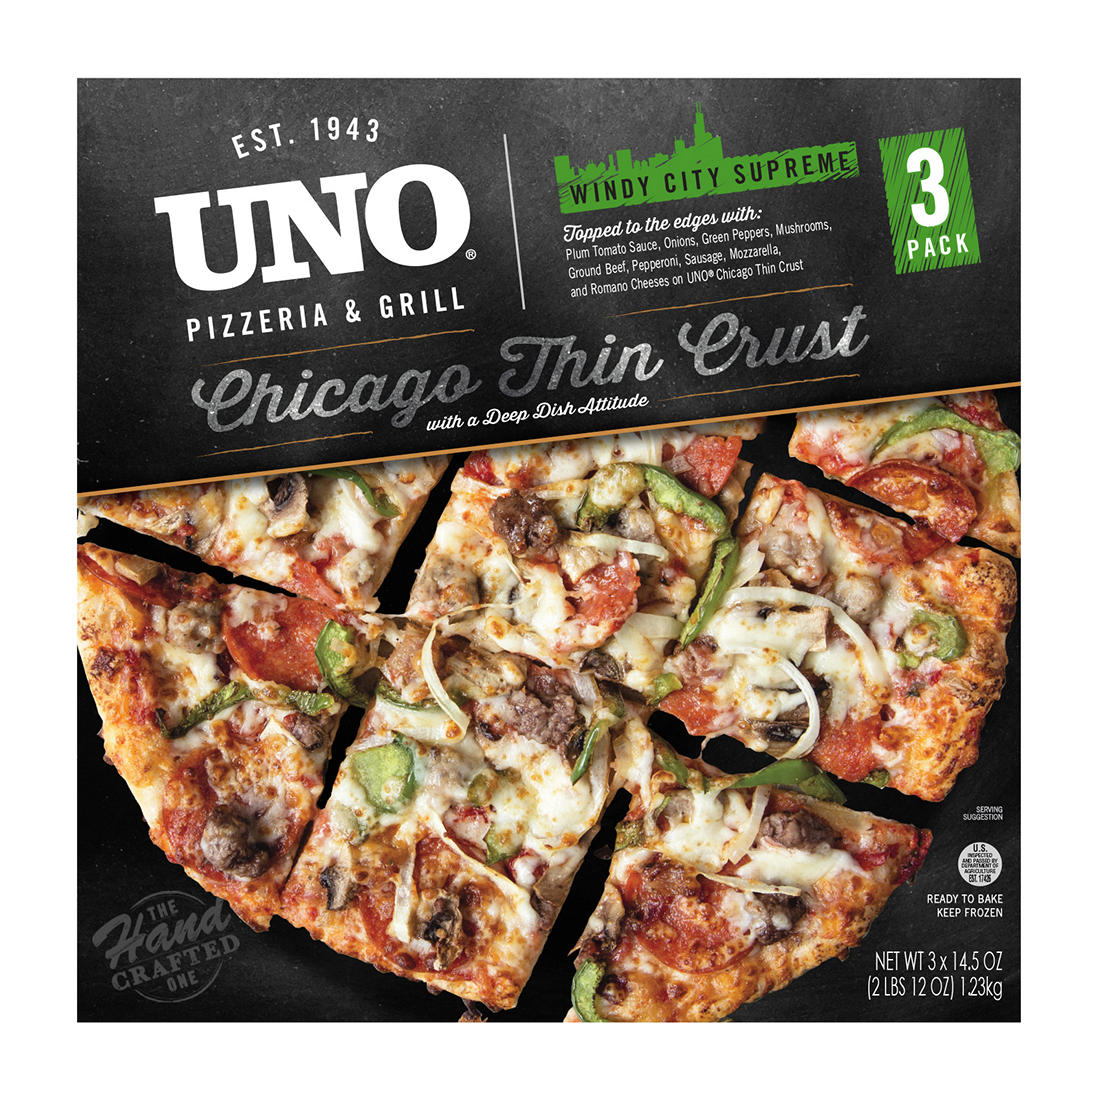 photo about Uno Coupons Printable identify Uno Pizzeria and Grill Chicago Skinny Crust, 3 ct.